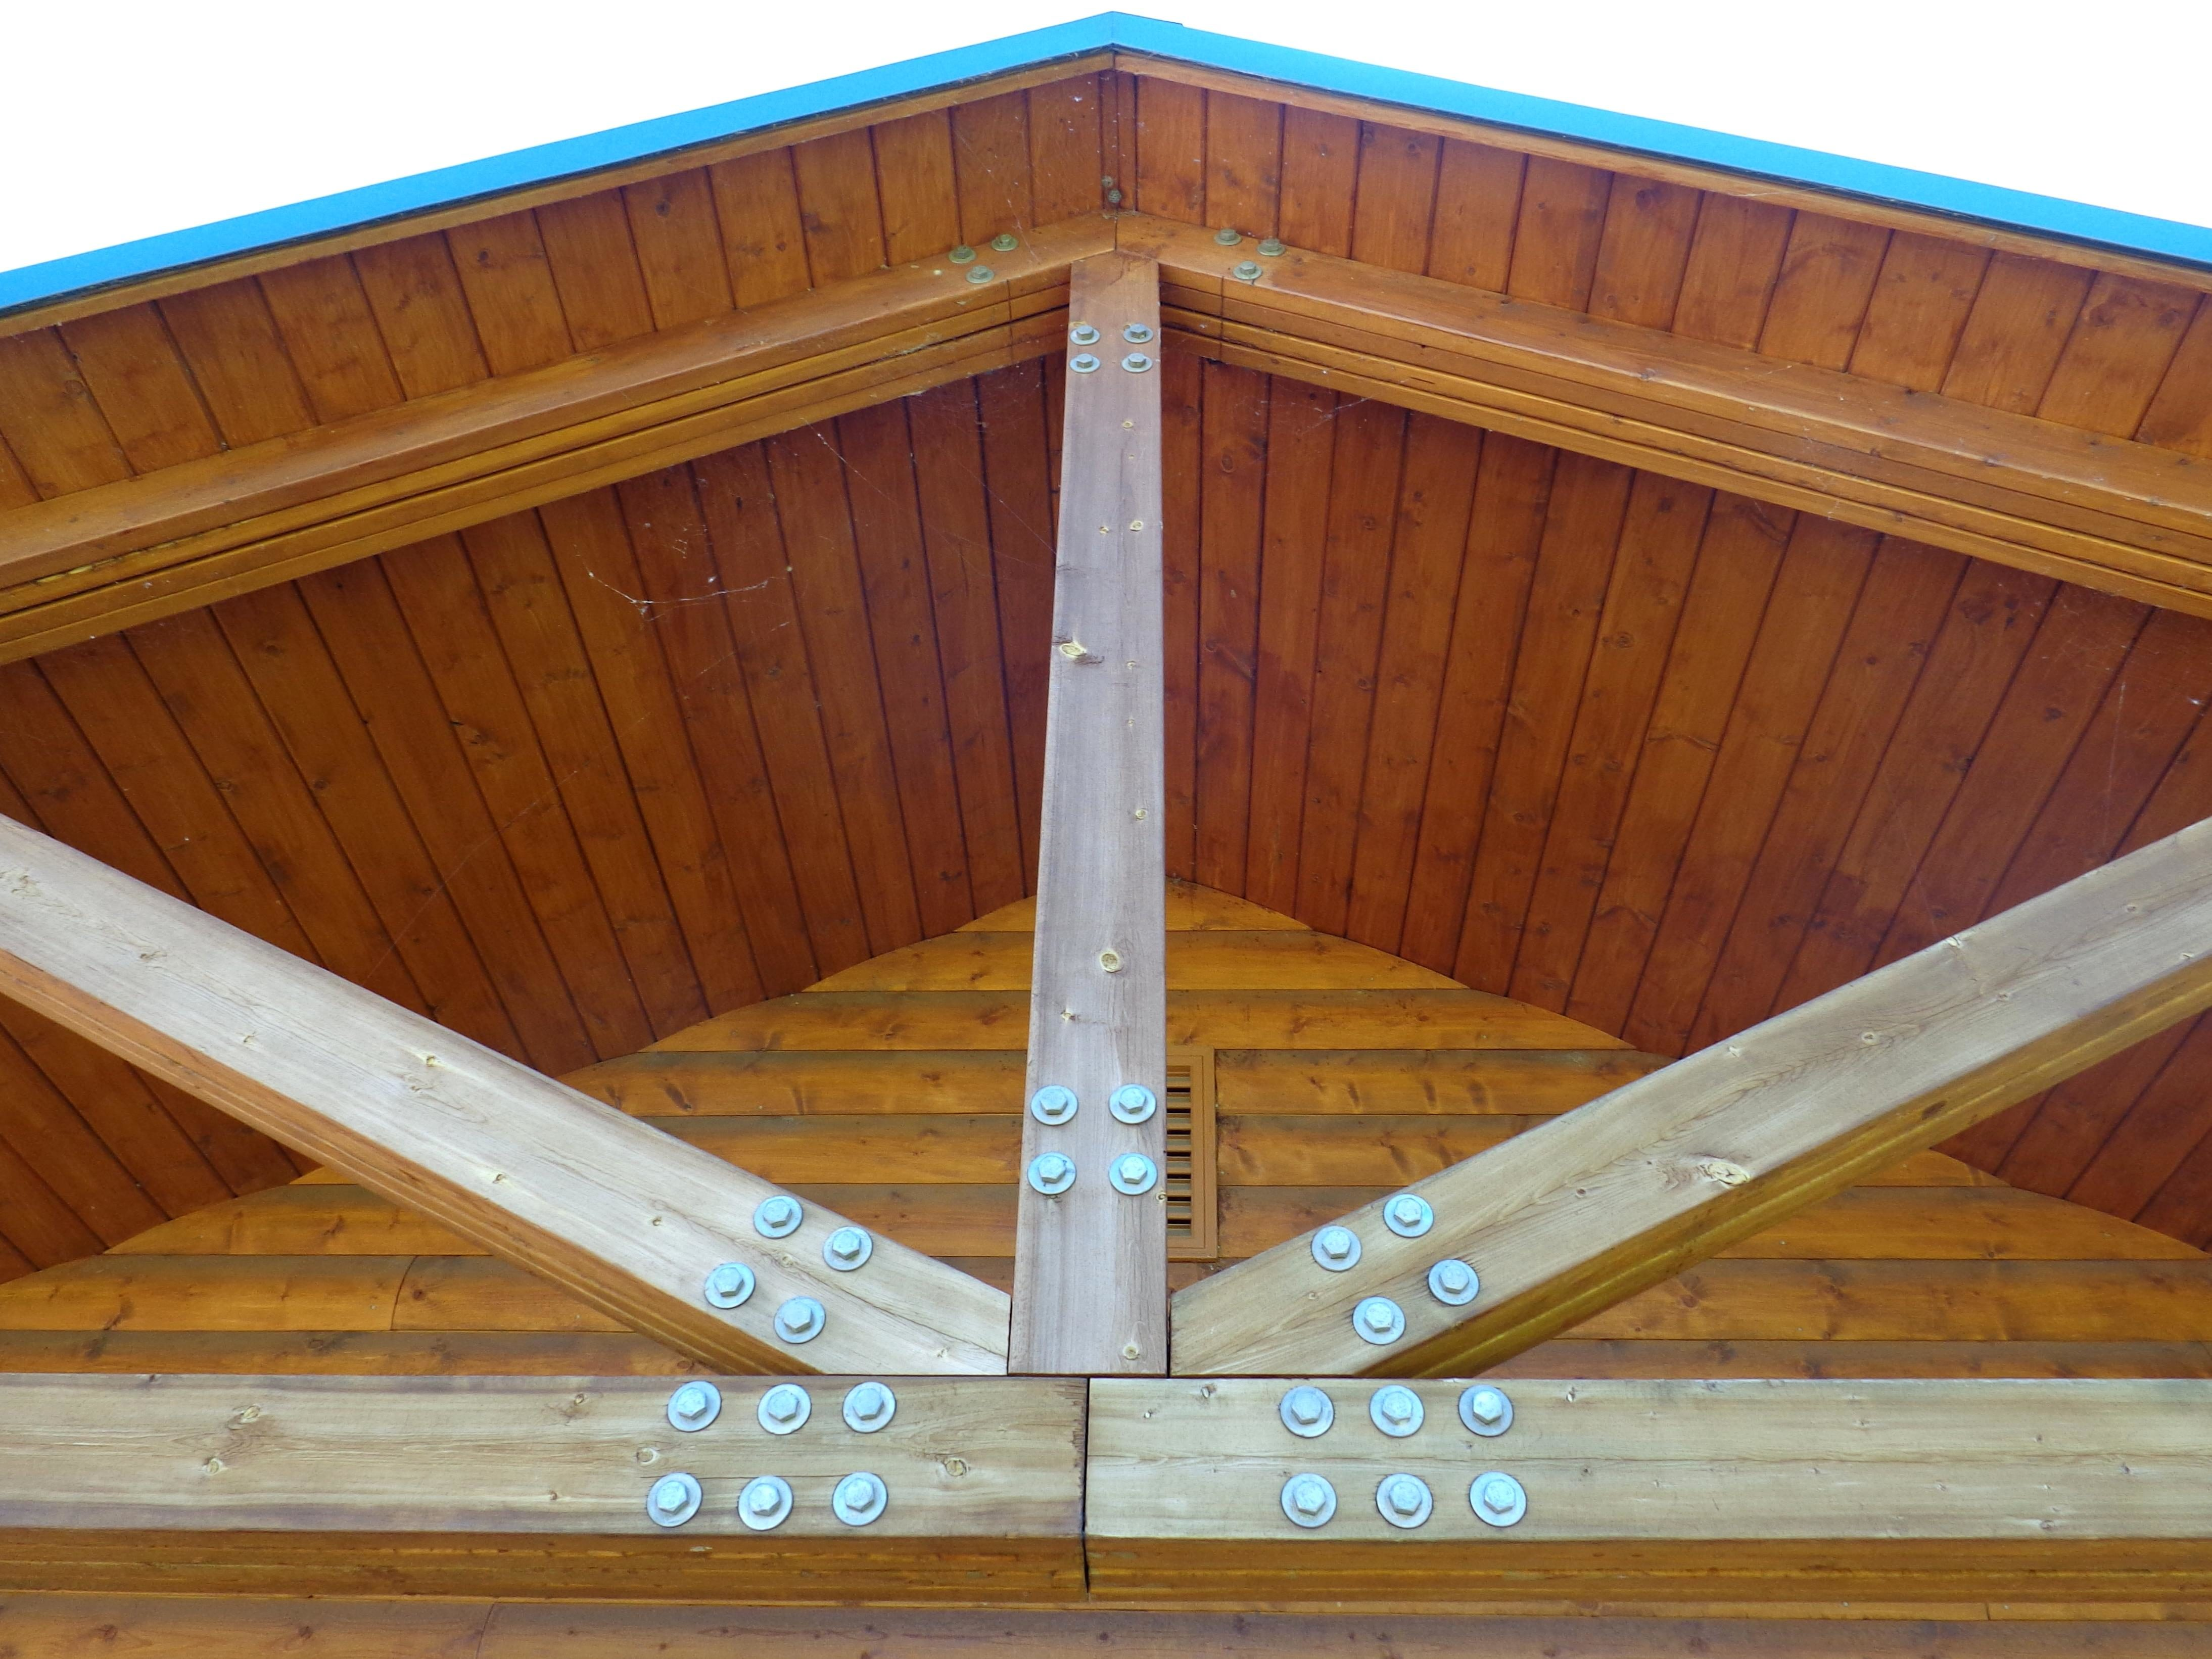 Delightful Wooden Roof, Support Beams, Construction